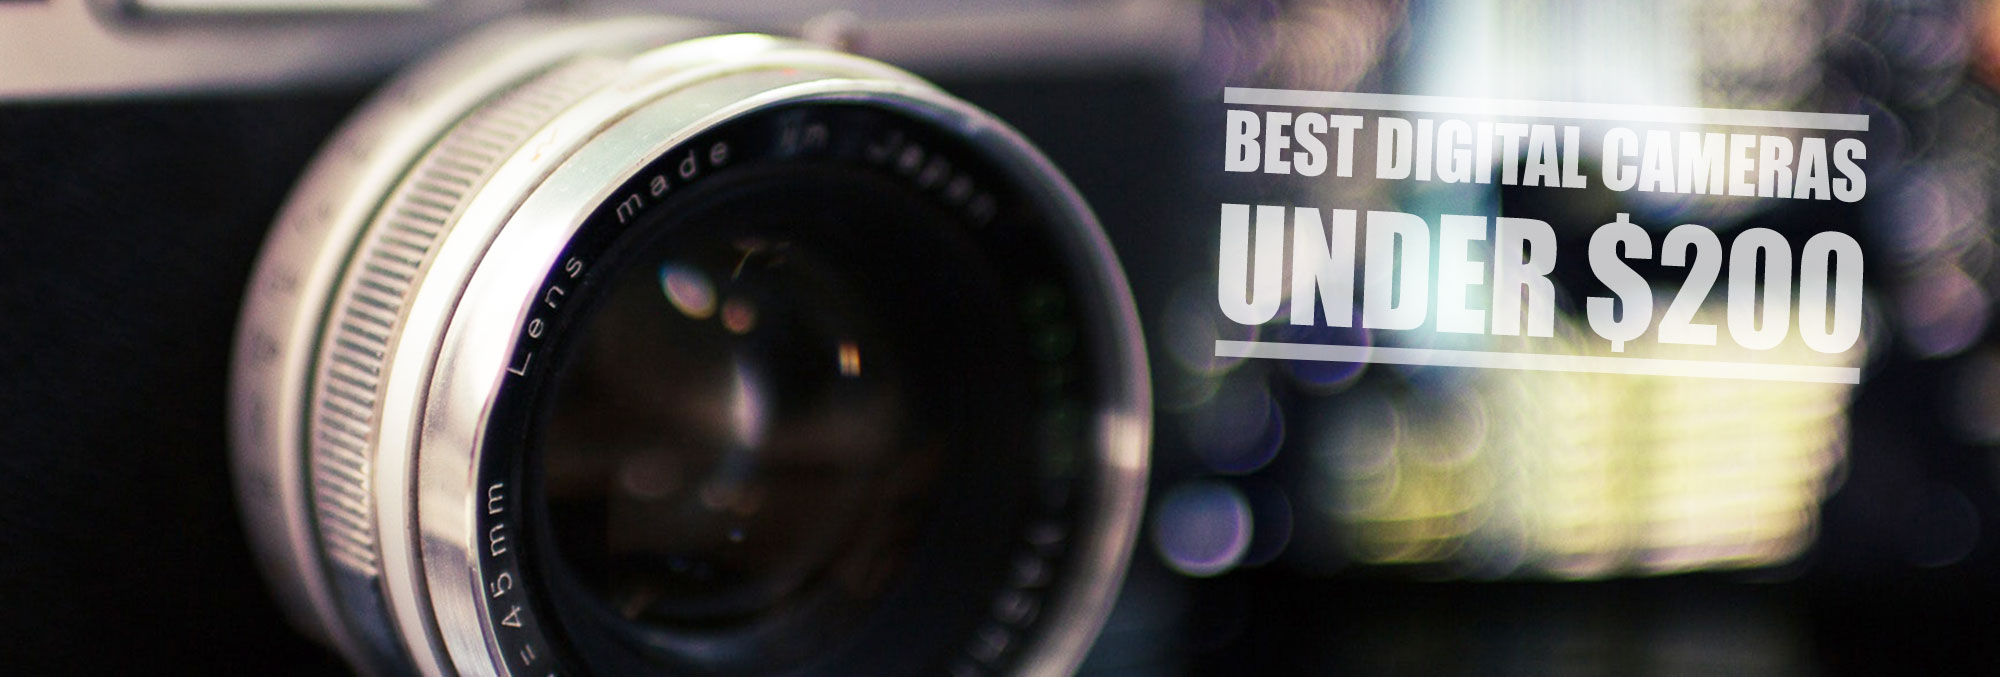 Top rated cameras under 200